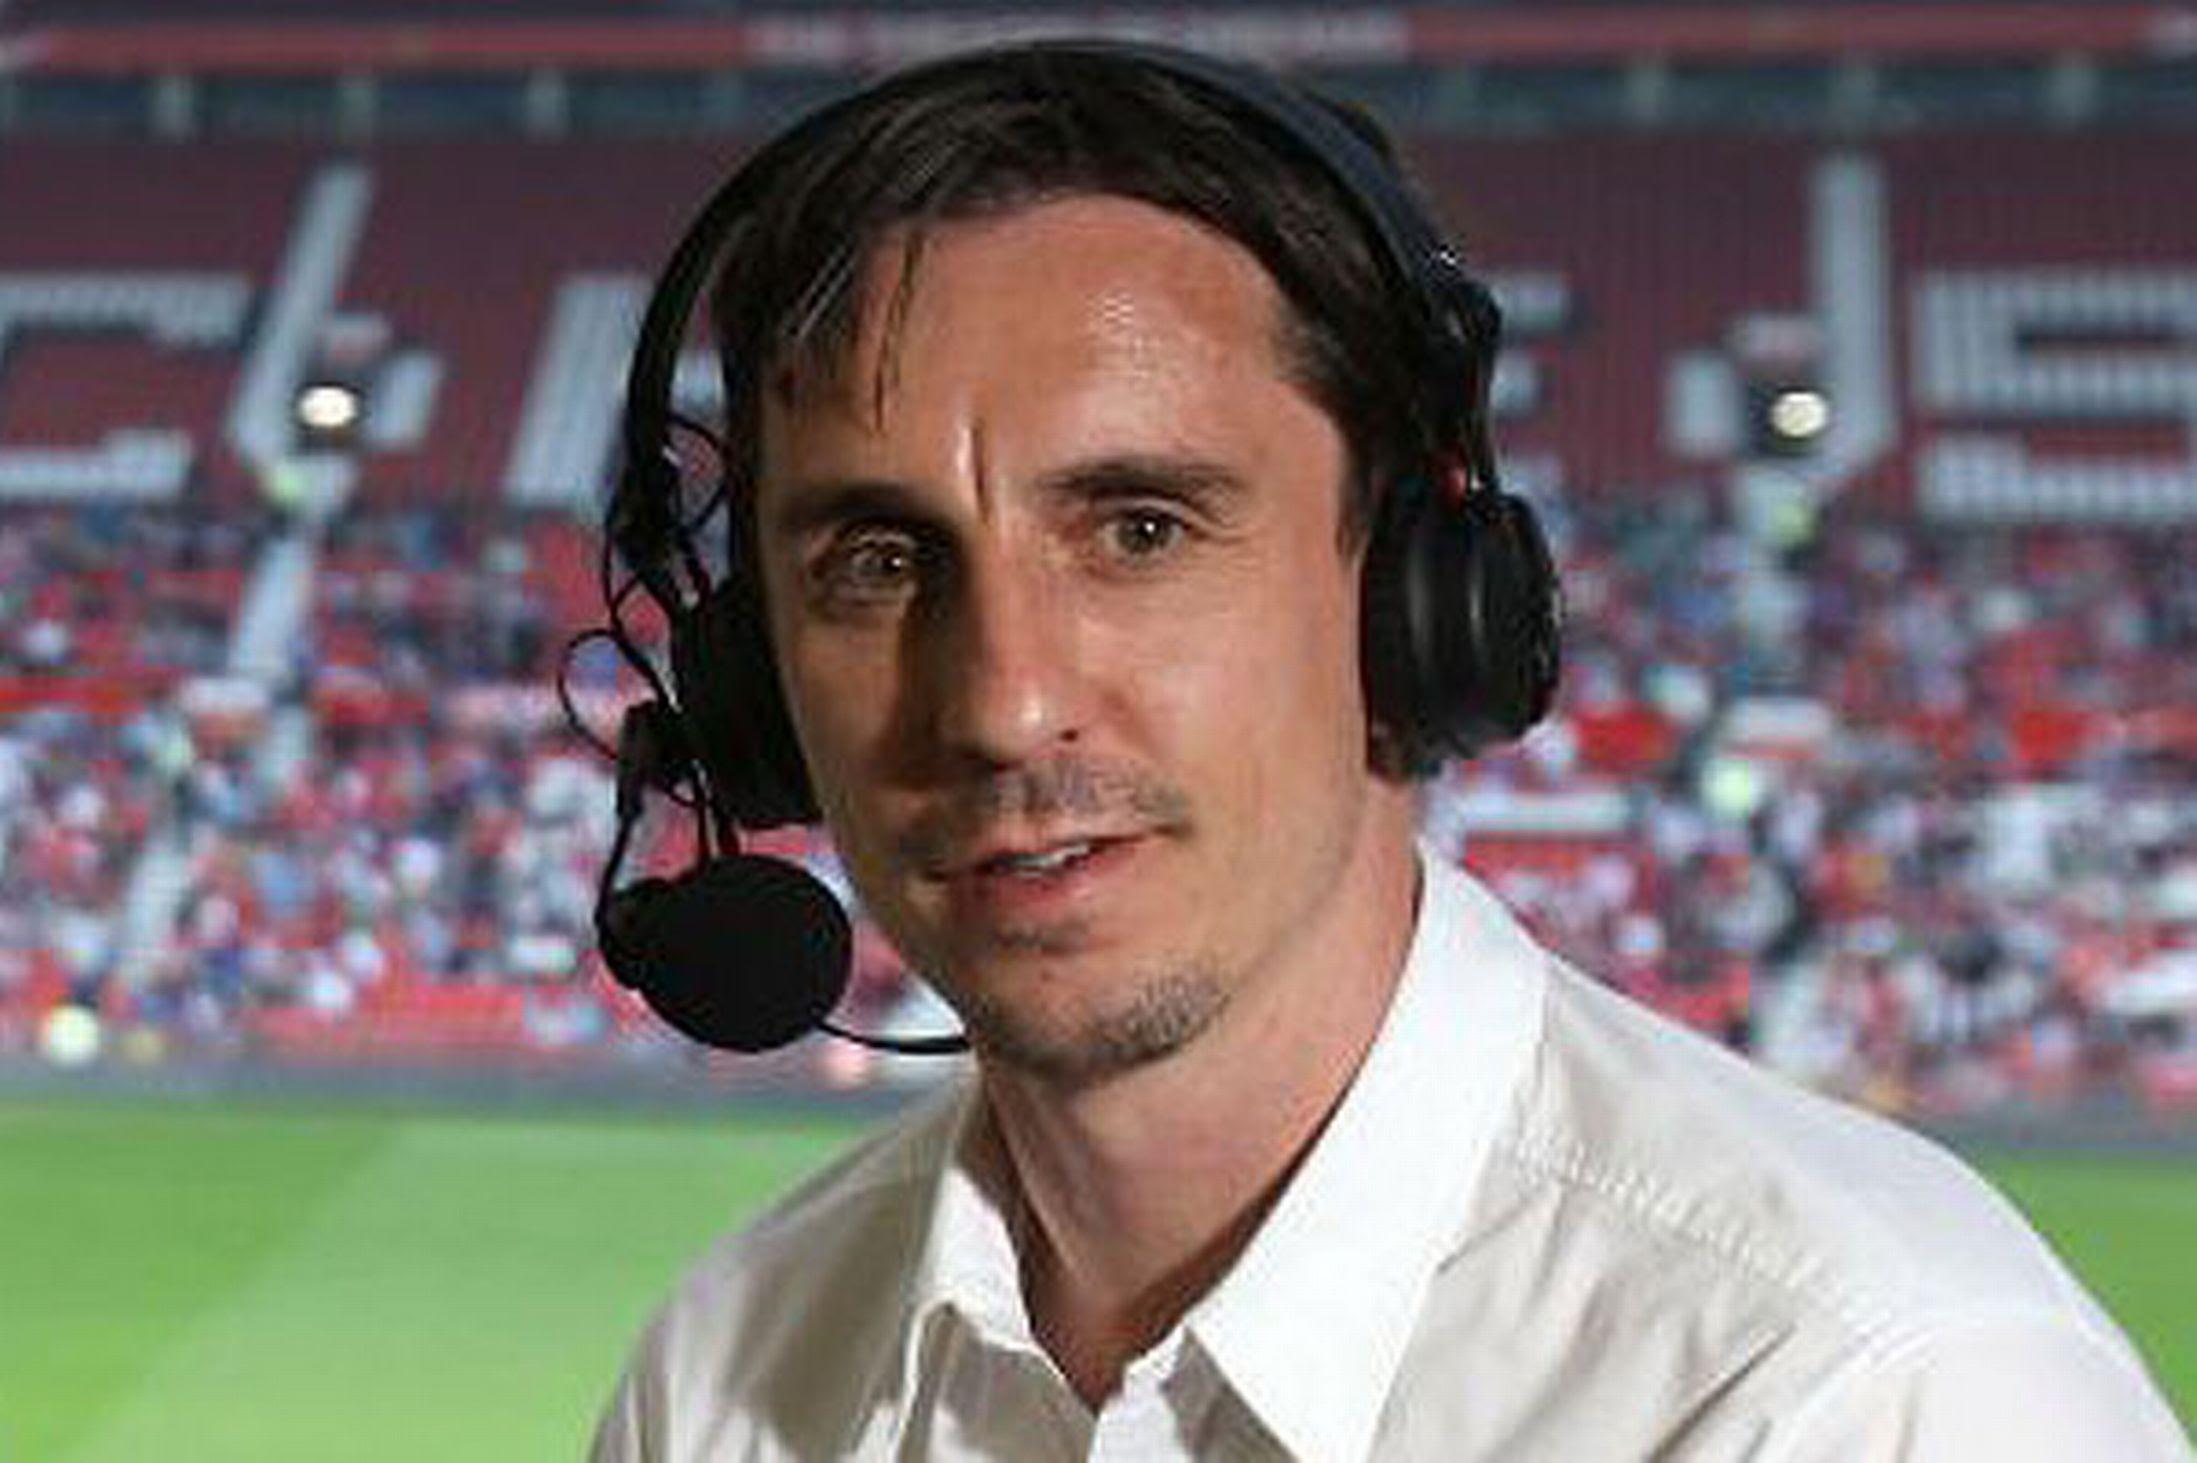 Gary Neville job after retired as Manchester United Player